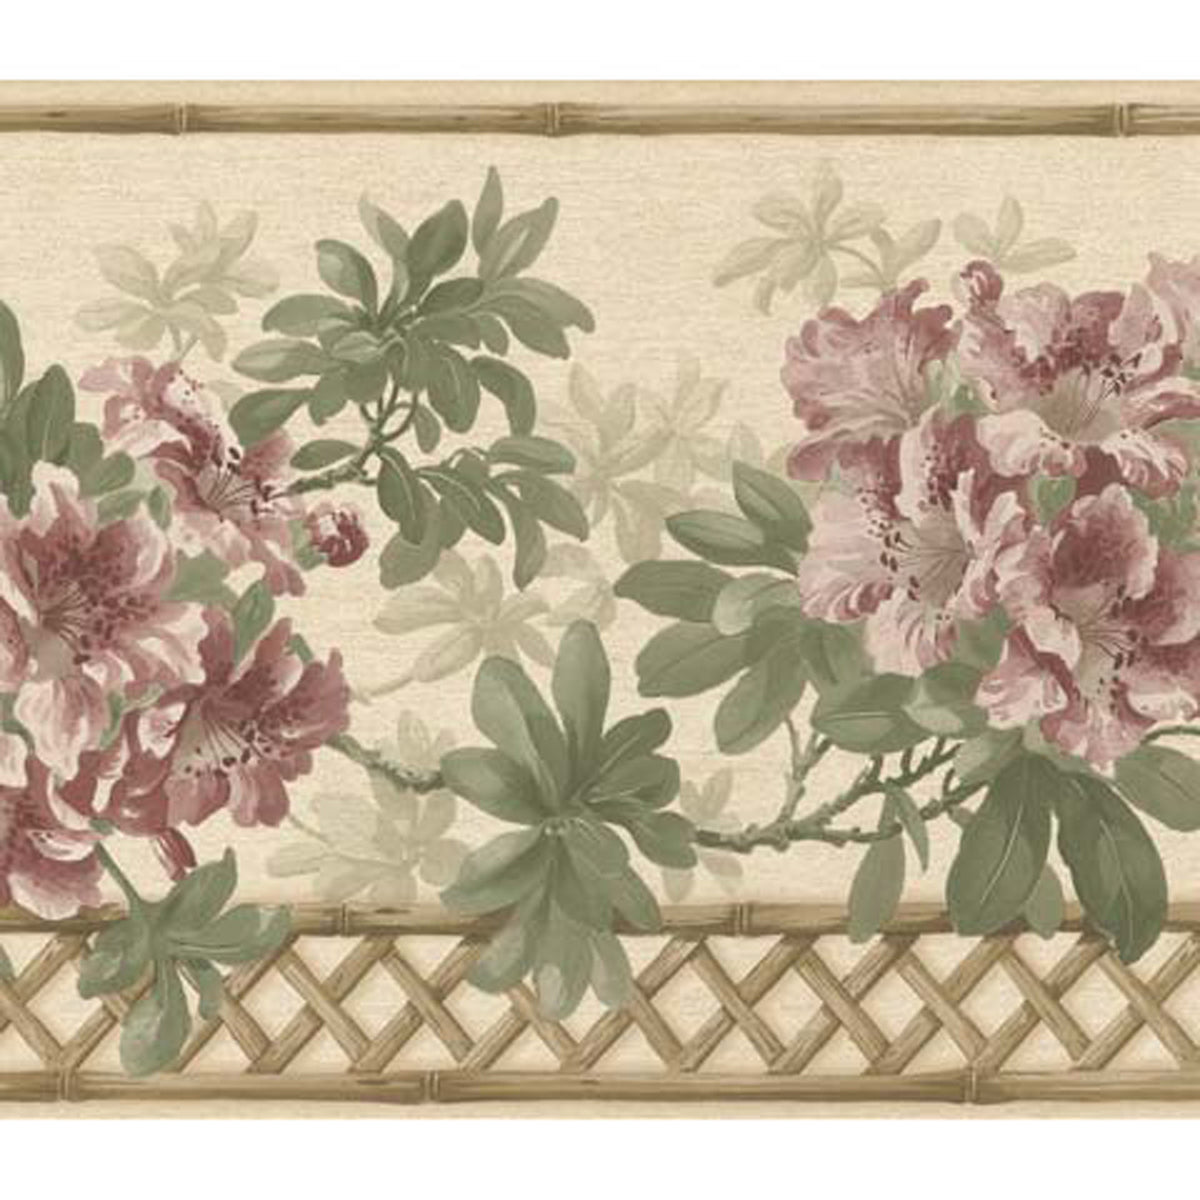 Floral 83b57401 Wallpaper Border On Sale Giftedparrot Com